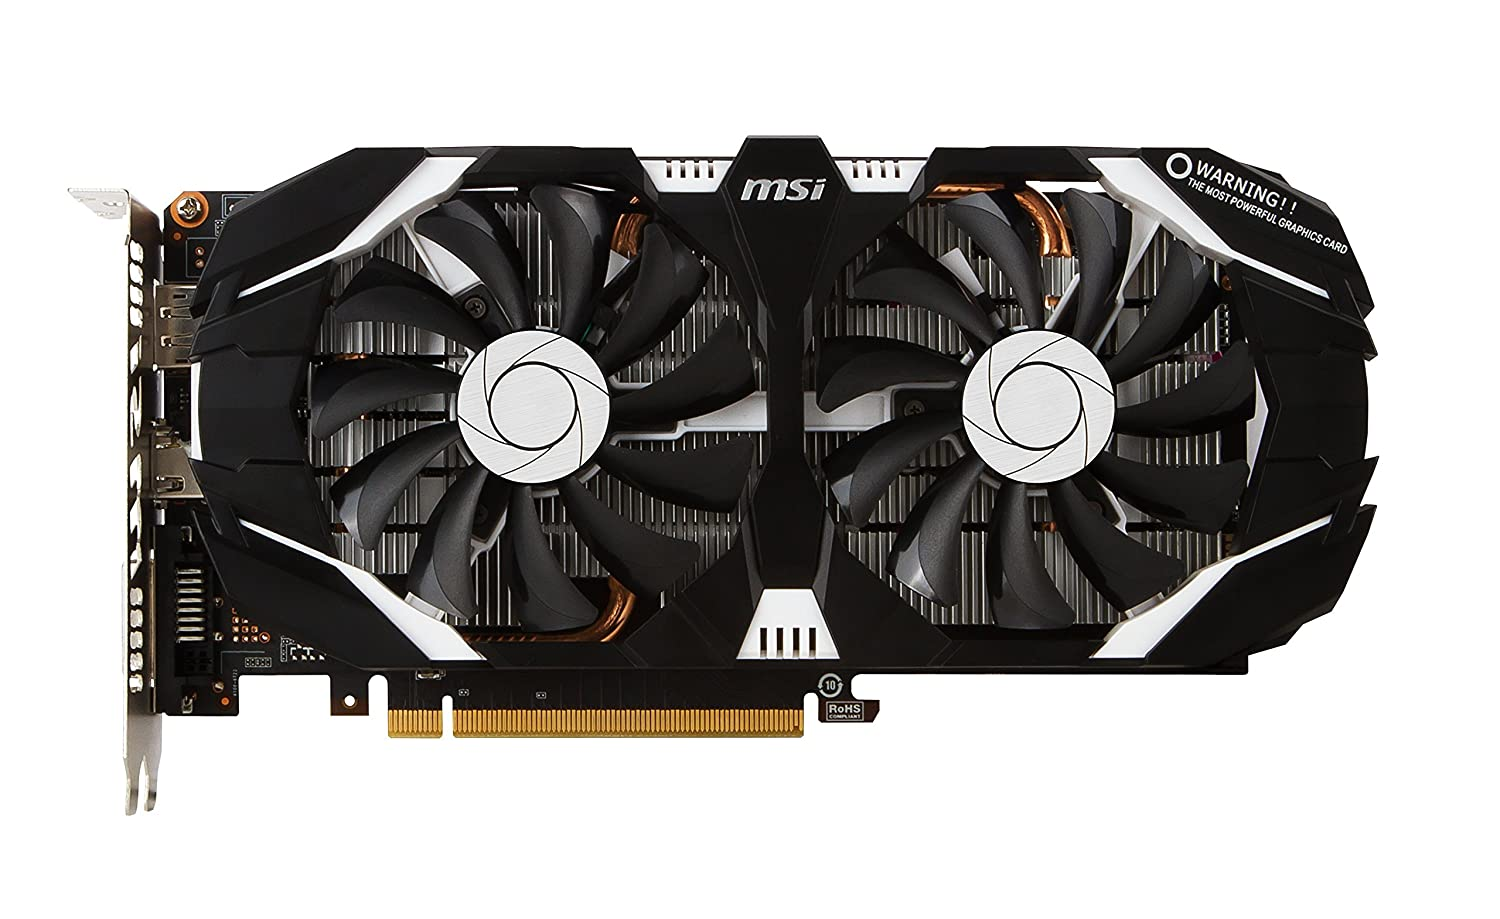 MSI Computer GTX 1060 3GT OC NVIDIA GeForce 3GB GDDR5 DVI/HDMI/DisplayPort PCI-Express Video Card (Renewed)